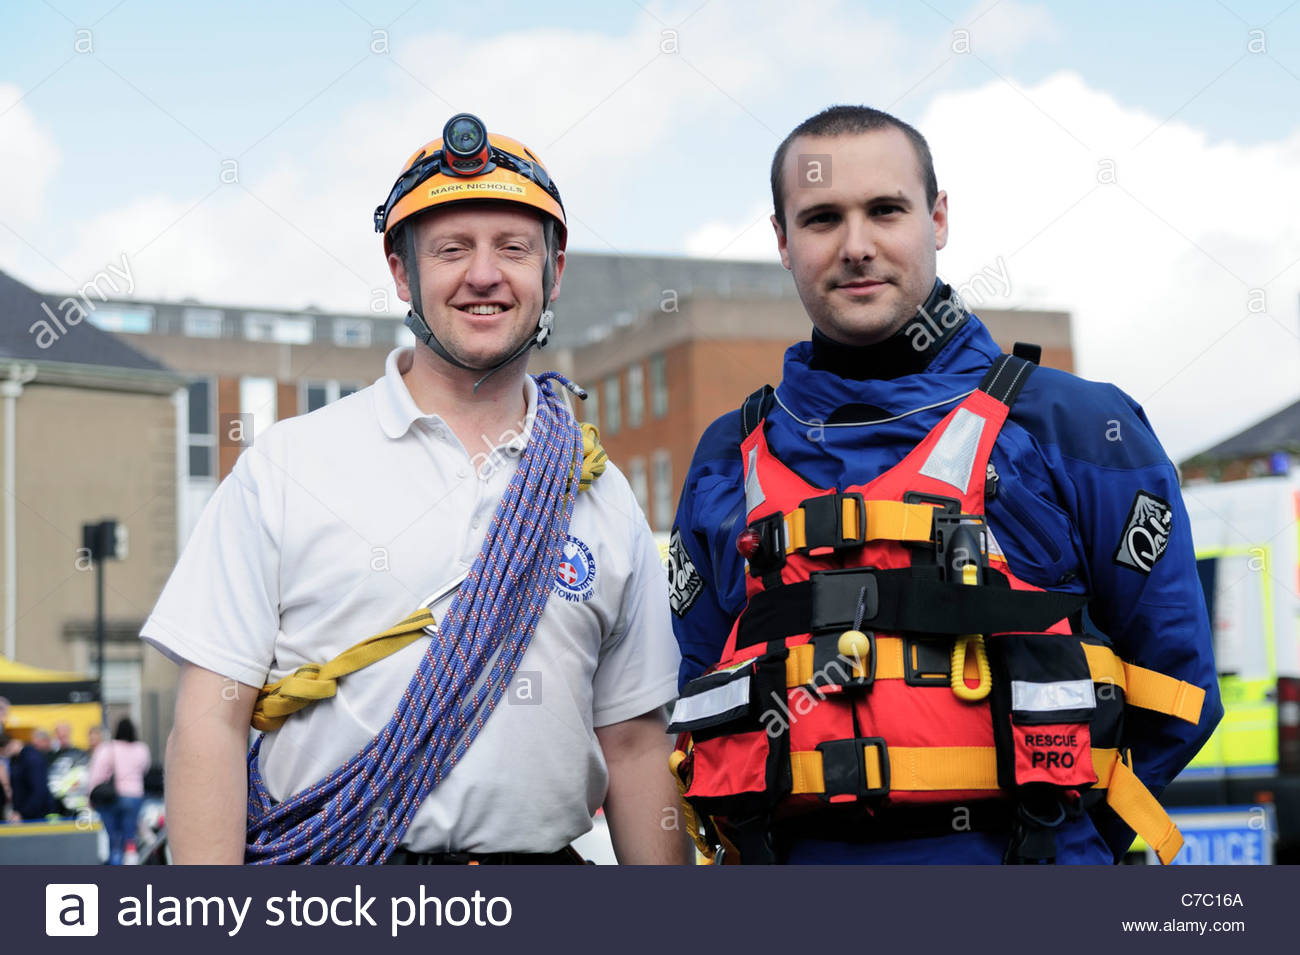 Mountain Rescue Team volunteers at open day, Hereford Police station, England, UK. - Stock Image